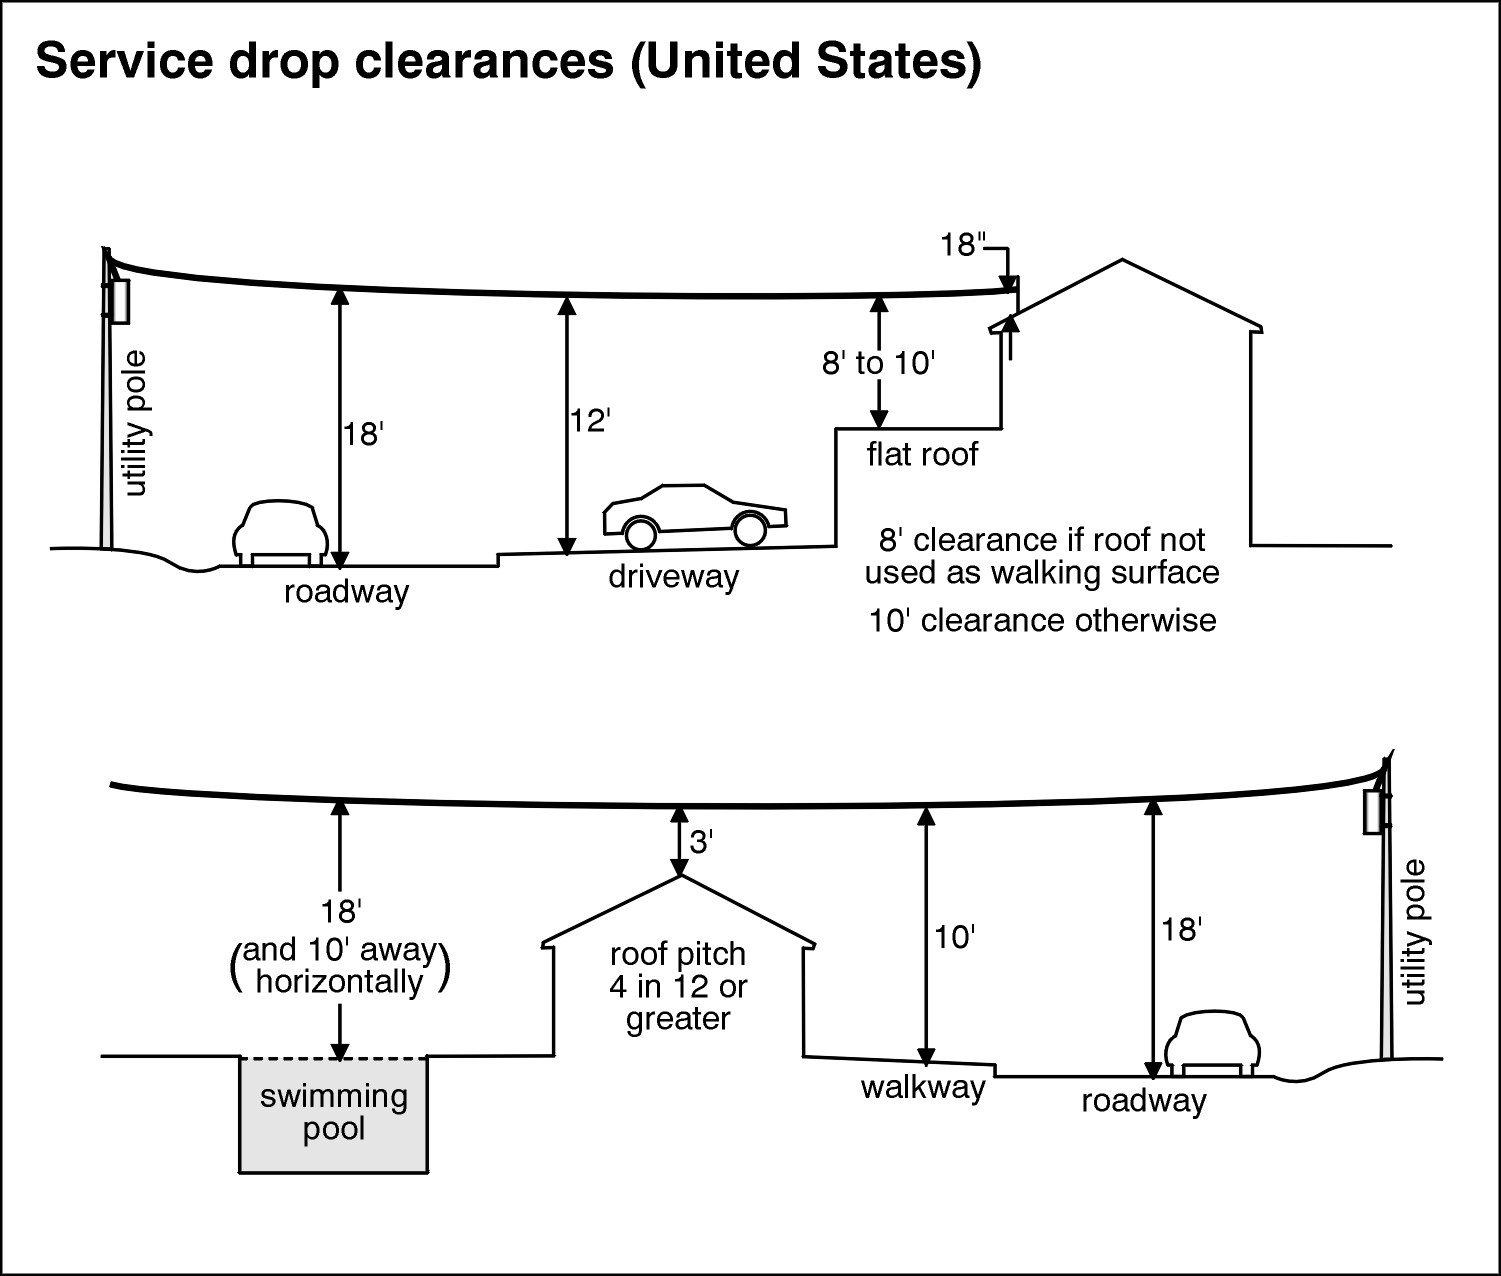 Service Drop Clearances (United States)